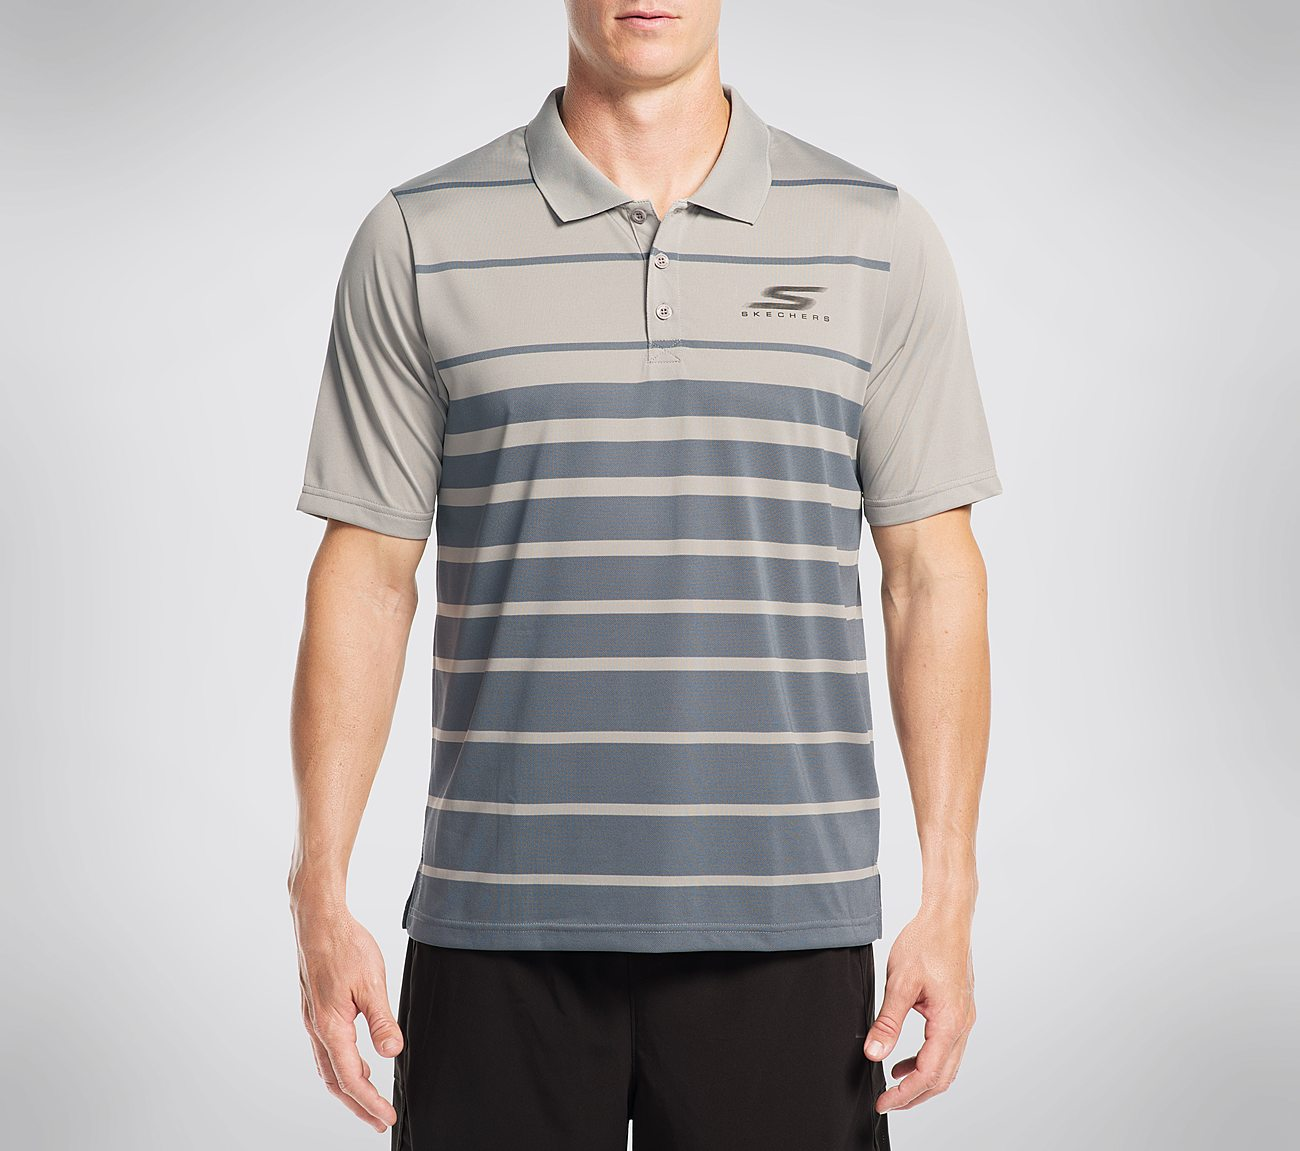 Skechers GO GOLF Soboba Polo Shirt